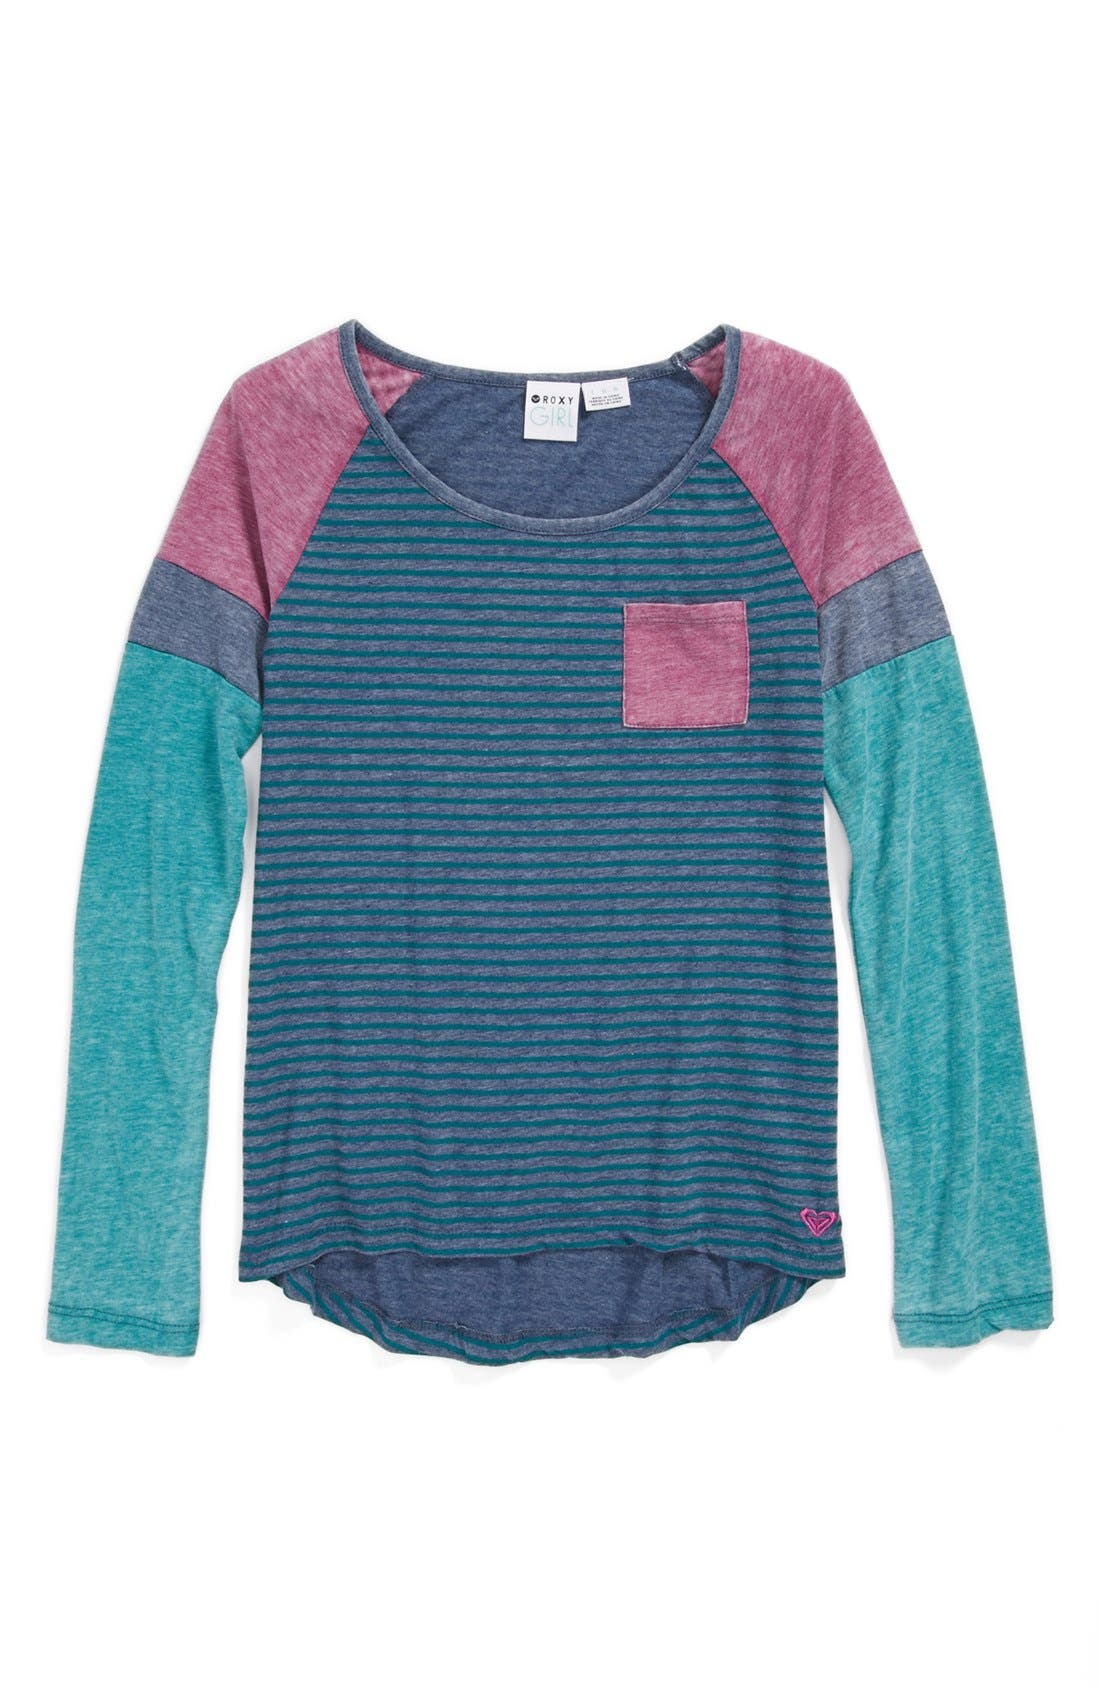 Main Image - Roxy 'Sandy Sunsets' Colorblock Tee (Toddler Girls)